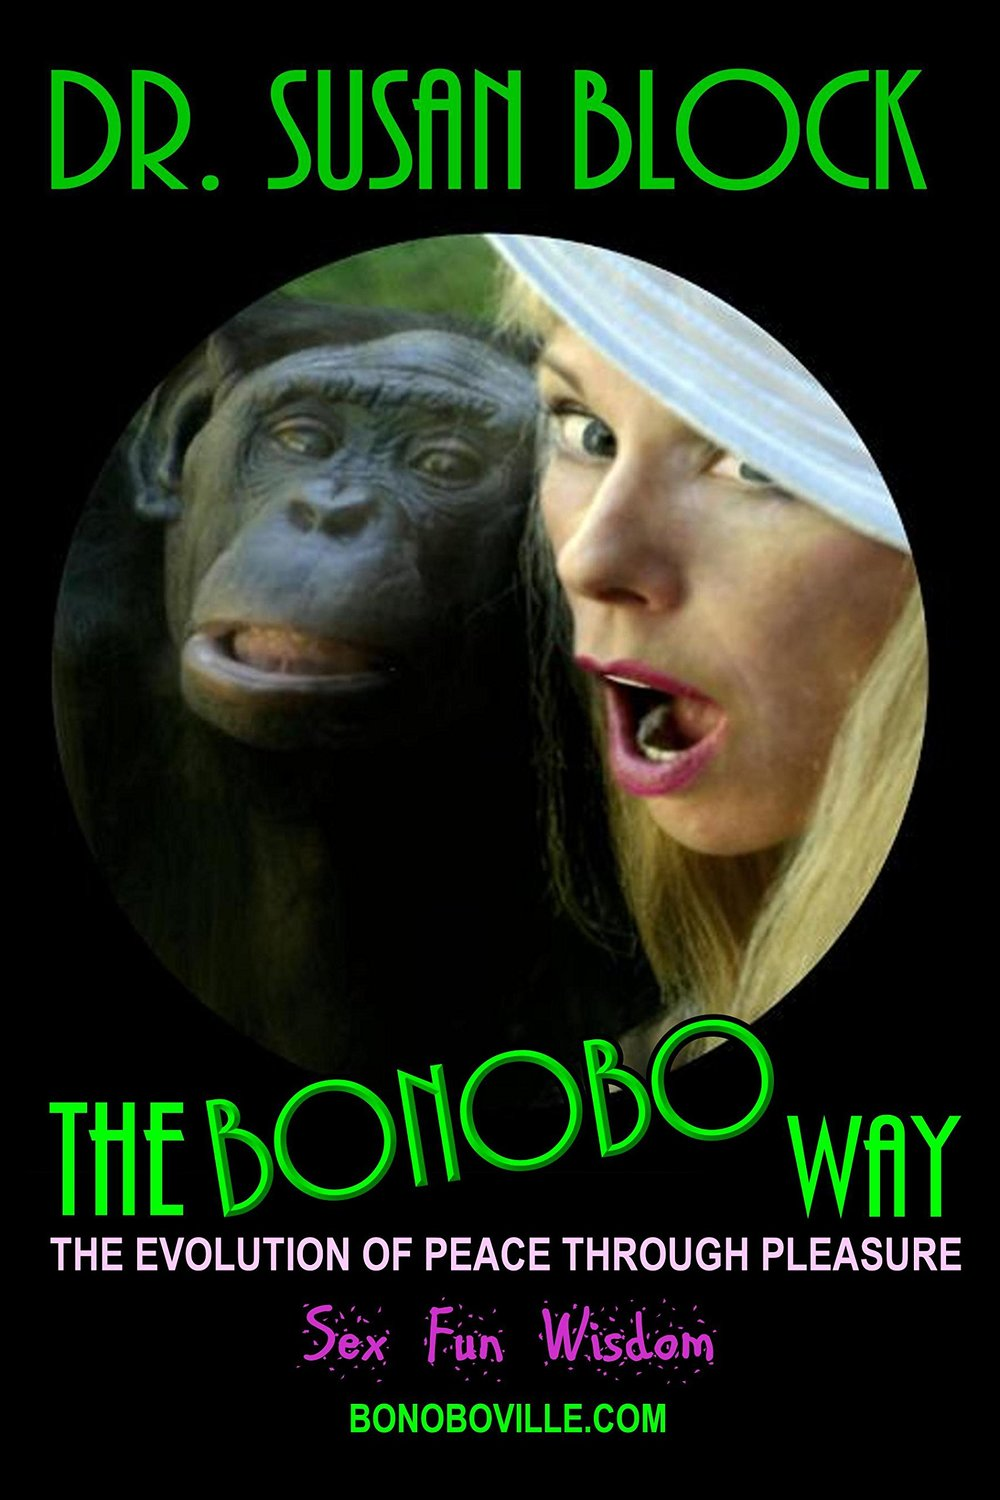 "Have you heard the buzz about bonobos? One of the fascinatingly freaky features that these free-loving primates exhibit, which seems to have skipped us humans during evolution (If you're into Darwinism), is the phrase that author Dr. Susan Block has coined, ""peace through pleasure"" Bonobo chimps de-escalate arguments – and violence – with sex. Unlike gorillas, chimps, or human, bonobos have a unique take on conflict resolution: Peace through pleasure. In The Bonobo Way, Dr. Block details common traits shared by all of bonobo kind. For example, they are naturally generous and open fisted with both food and sex.  ""Peace through pleasure is more than make-up sex. It's a way of life and a way of thinking about oneself and the world."" But it's not just our oversexed evolutionary ancestors from whom we can learn a thing or two. The Bonobo Way is riddled with real world examples from Dr. Block's own clients (anonymously) as a sex therapist of over 25 years. Dr. Block delivers the deets on an array of other subjects in a way that only she can. Recreational drugs and sex, SSRIS and sex, communication and sex, and the many parallels between the two sexes are but a few the subjects Dr. Block works through in her book. Through Dr. Block's experience as the director of the Susan Block Institute for the Art & Science of Sex, we are given an insight into the world of eroticism. We see compassion, love, generosity, and a stark reality of a way in which we can live better lives by mimicking monkeys. The way that these bonobos live challenge all of the preconceived ideas about how civilizations work, or in the words of Dr. Block, ""It's a return to a time before humans invented agriculture..."" Dr. Block preaches the benefit of sexual liberty without becoming a libertine (read: ethical hedonism) and urges us to ""go bonobos"". But what does it mean to #GoBonobos? The Bonobo Way includes a 12 Step plan to help you #GoBonobos and unleash your inner primate in bed, or anywhere, for that matter (anywhere legally and responsibly, of course). All of this and much, much more is detailed by world renown sexologist Dr. Susan Block in her book, The Bonobo Way. You can pick up a copy of The Bonobo Way by Dr. Susan Block here. Visit the Dr. Susan Block Institute here and be sure to watch the Dr. Susan Block show where Dr. Block and her colorful cast of porn stars and bonobos explore lust, love, fetishes, sexuality and more every Saturday night from Bonoboville at RadioSuzy1 here."